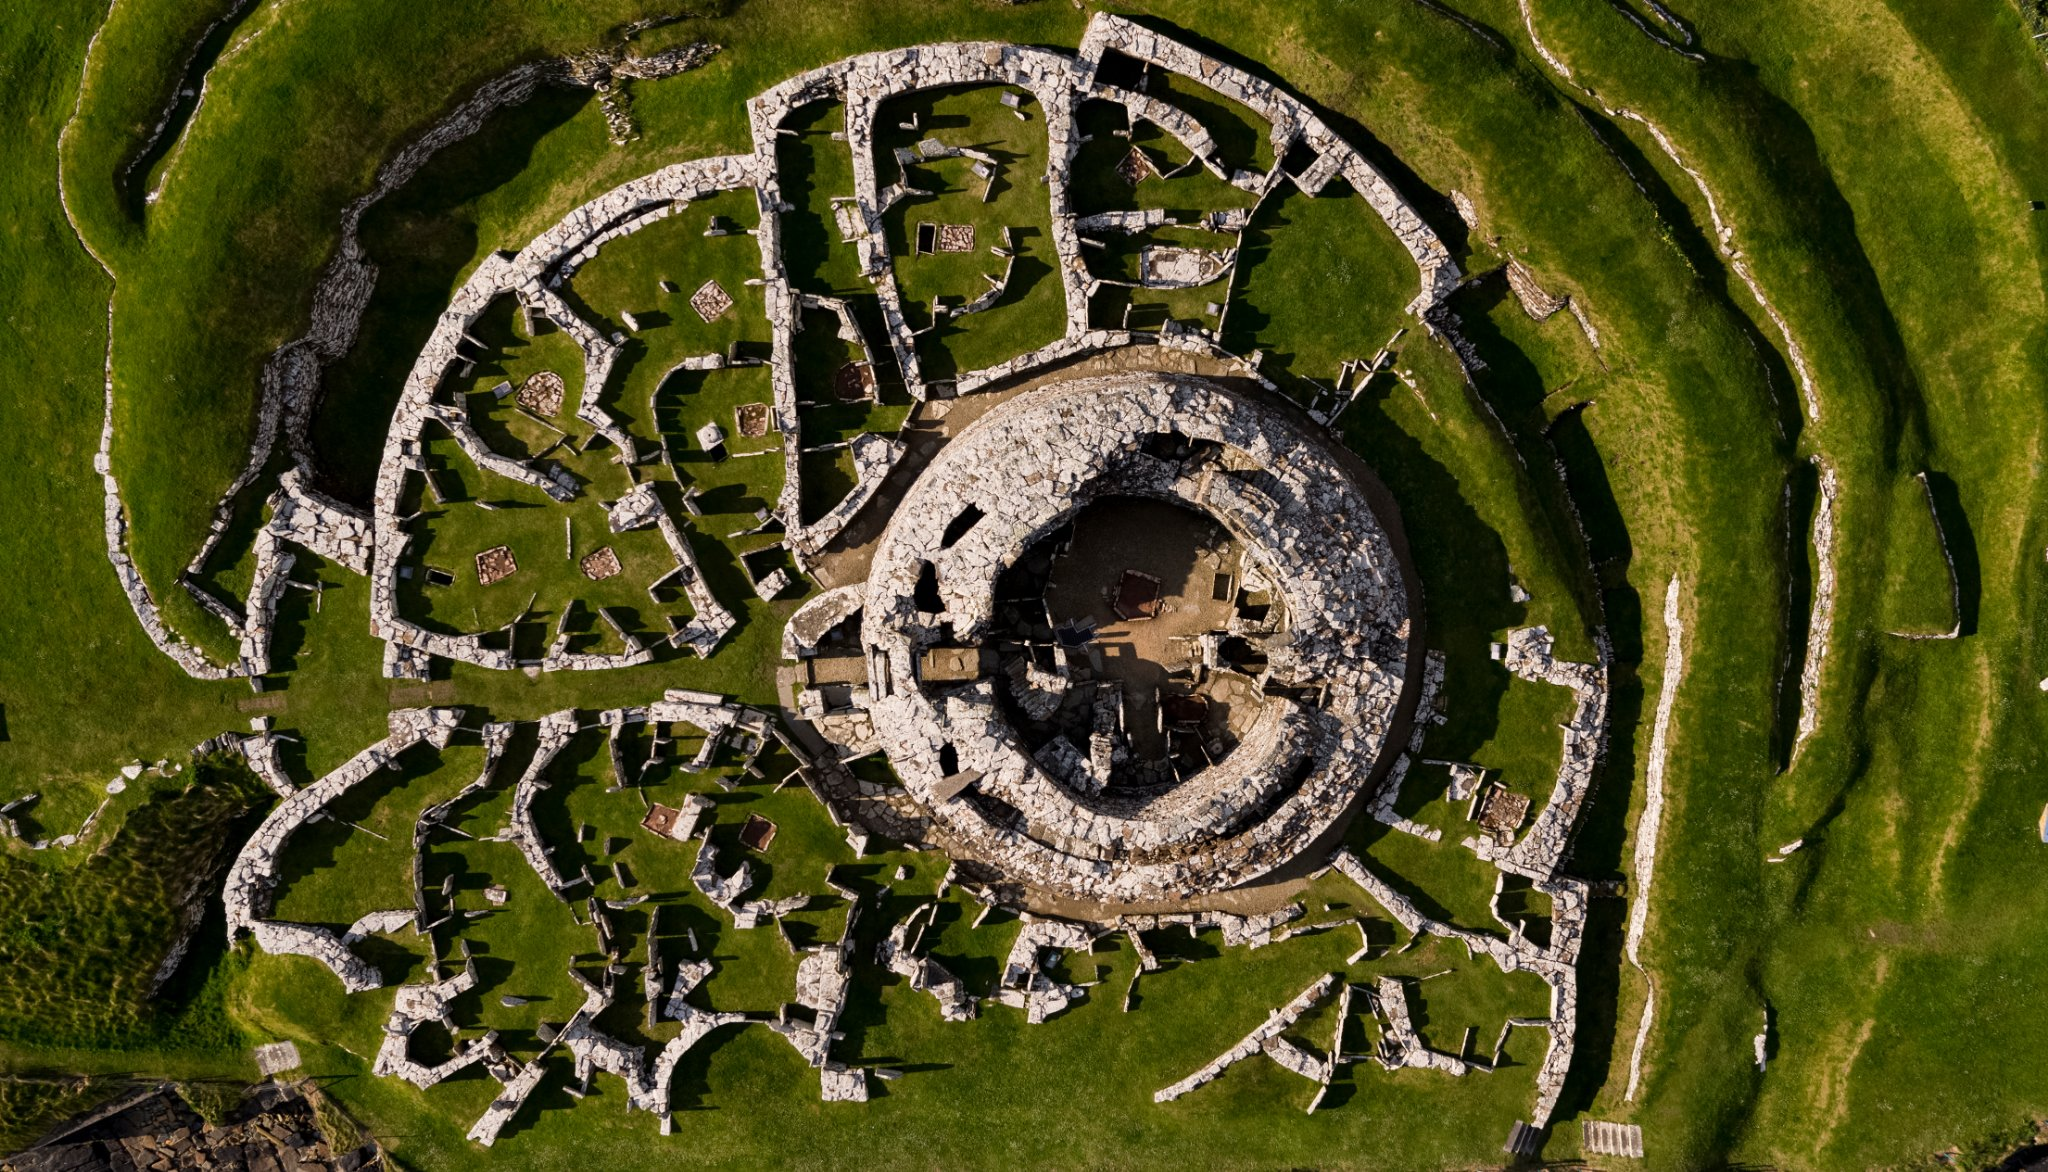 The Broch of Gurness, Orkney - image by Nick McCaffrey